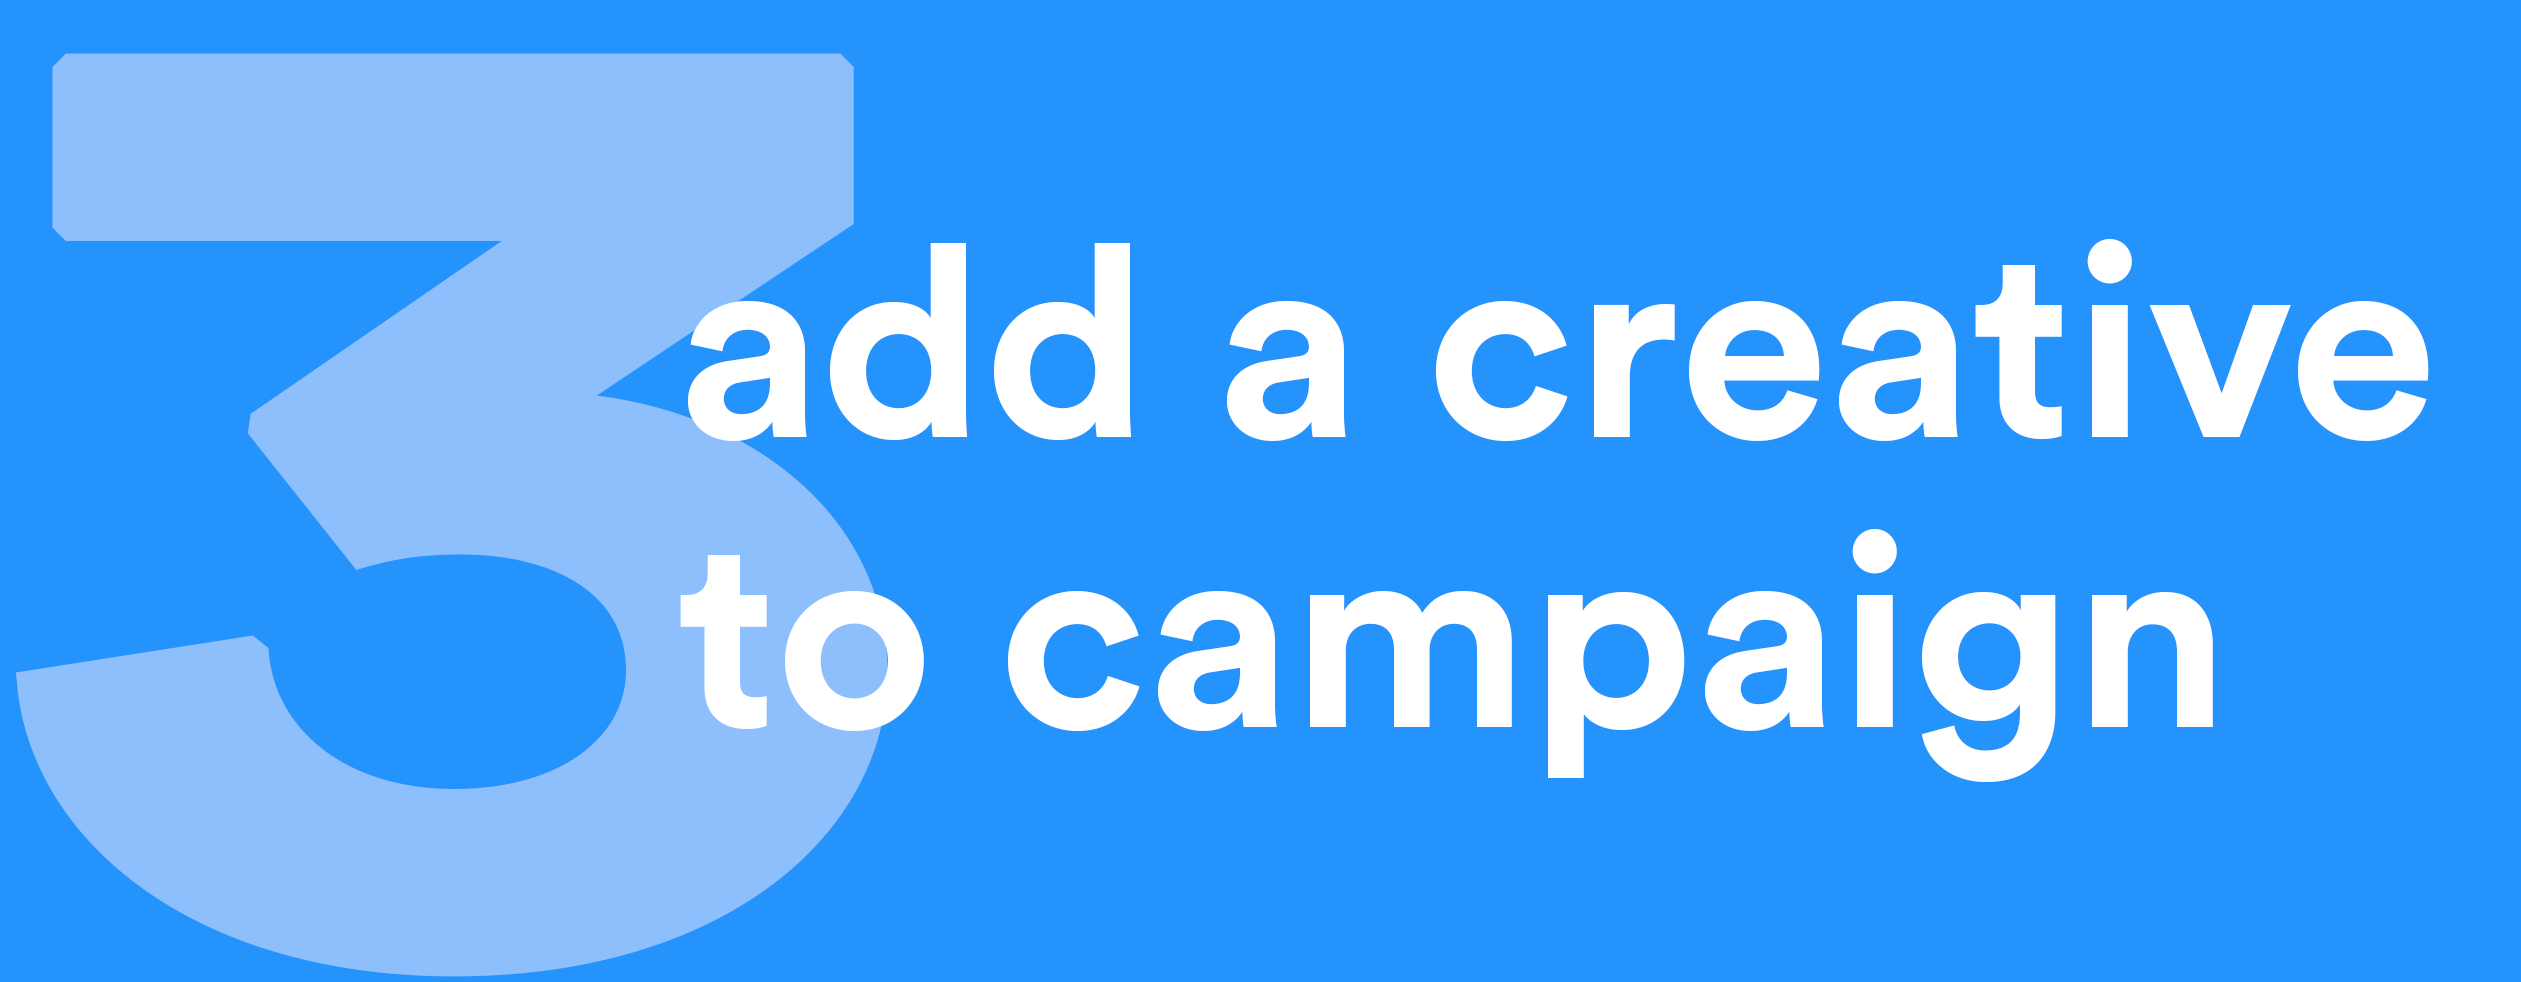 Add a creative to your campaign